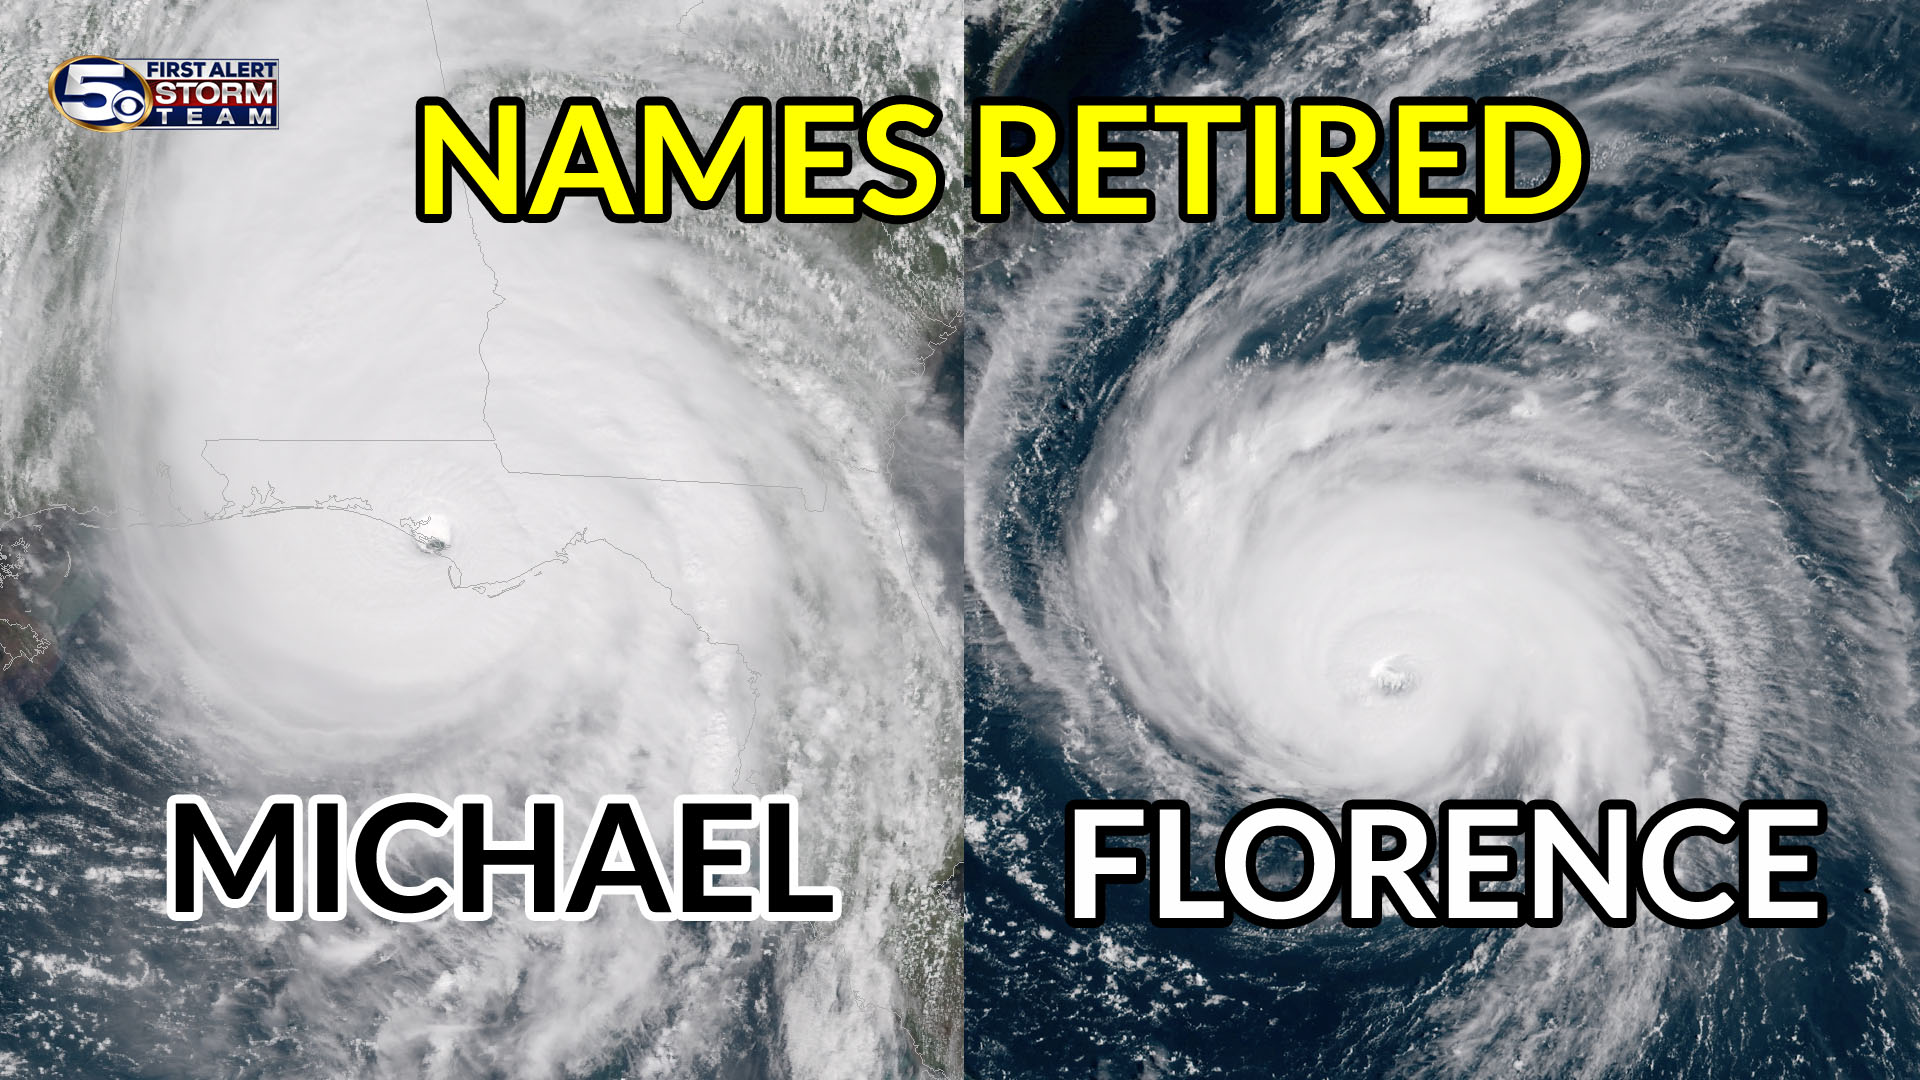 michael florence name retire hurricane 2018